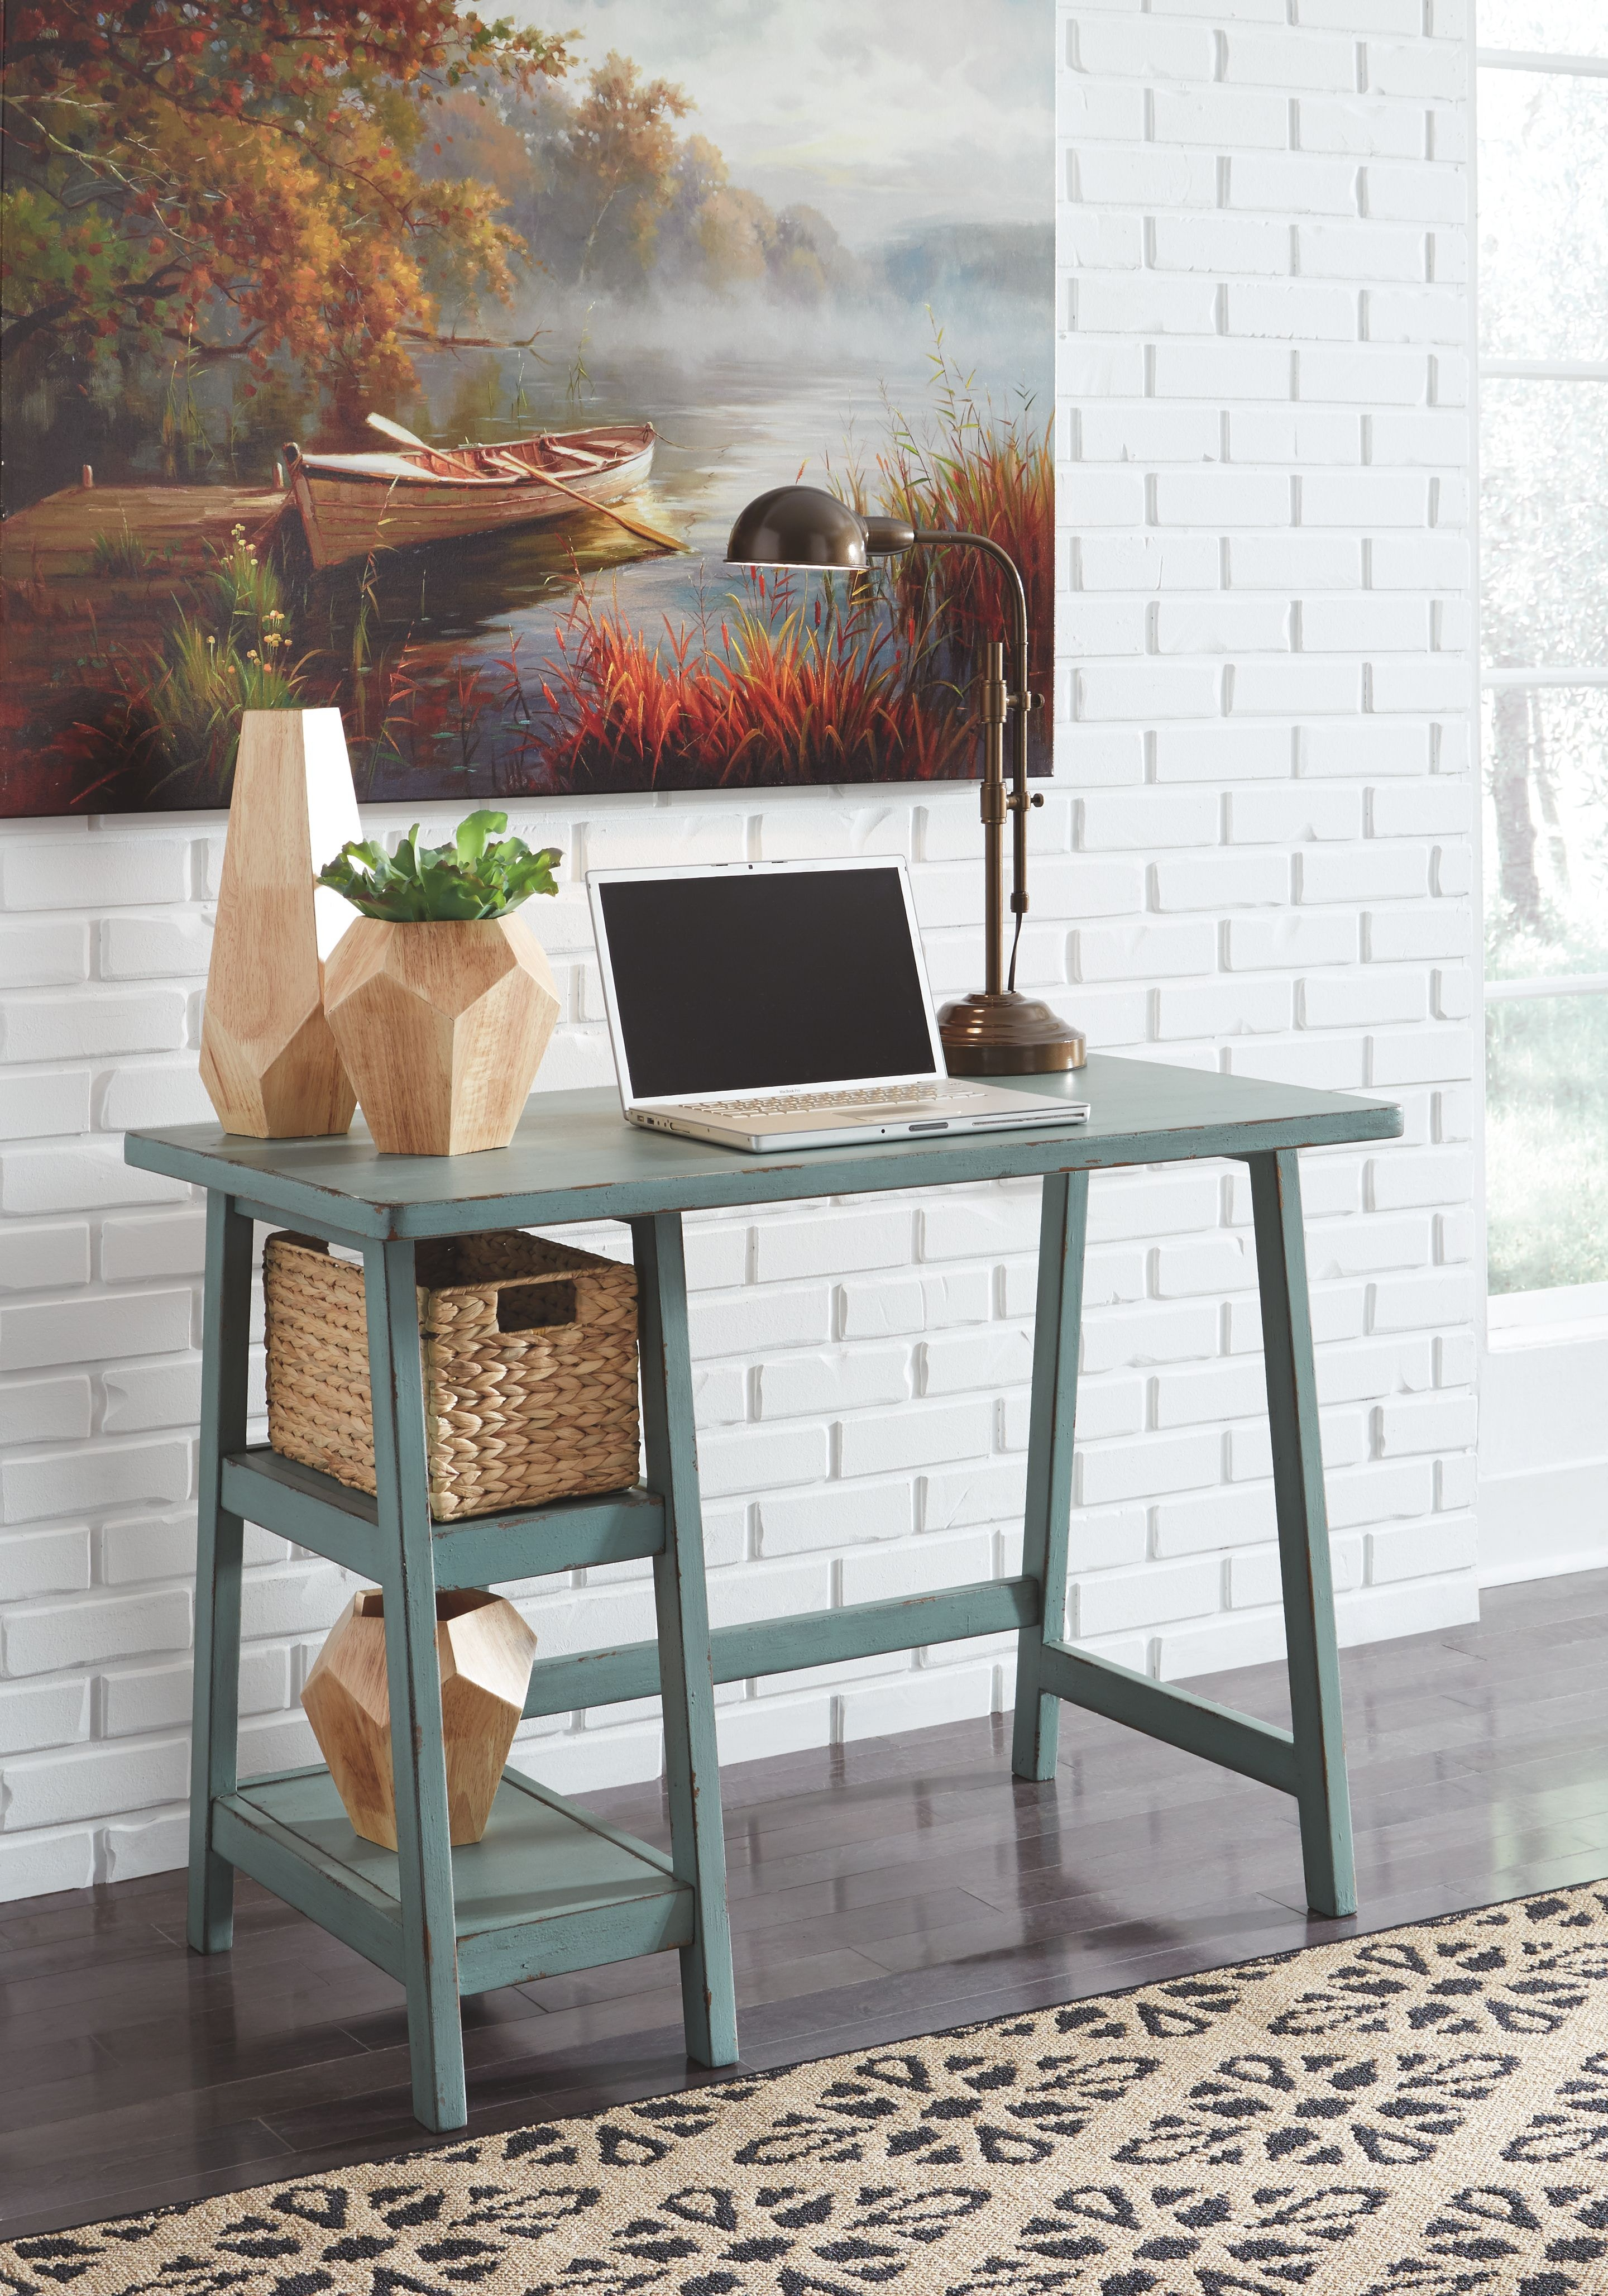 Signature design by ashley home office small desk h505 710